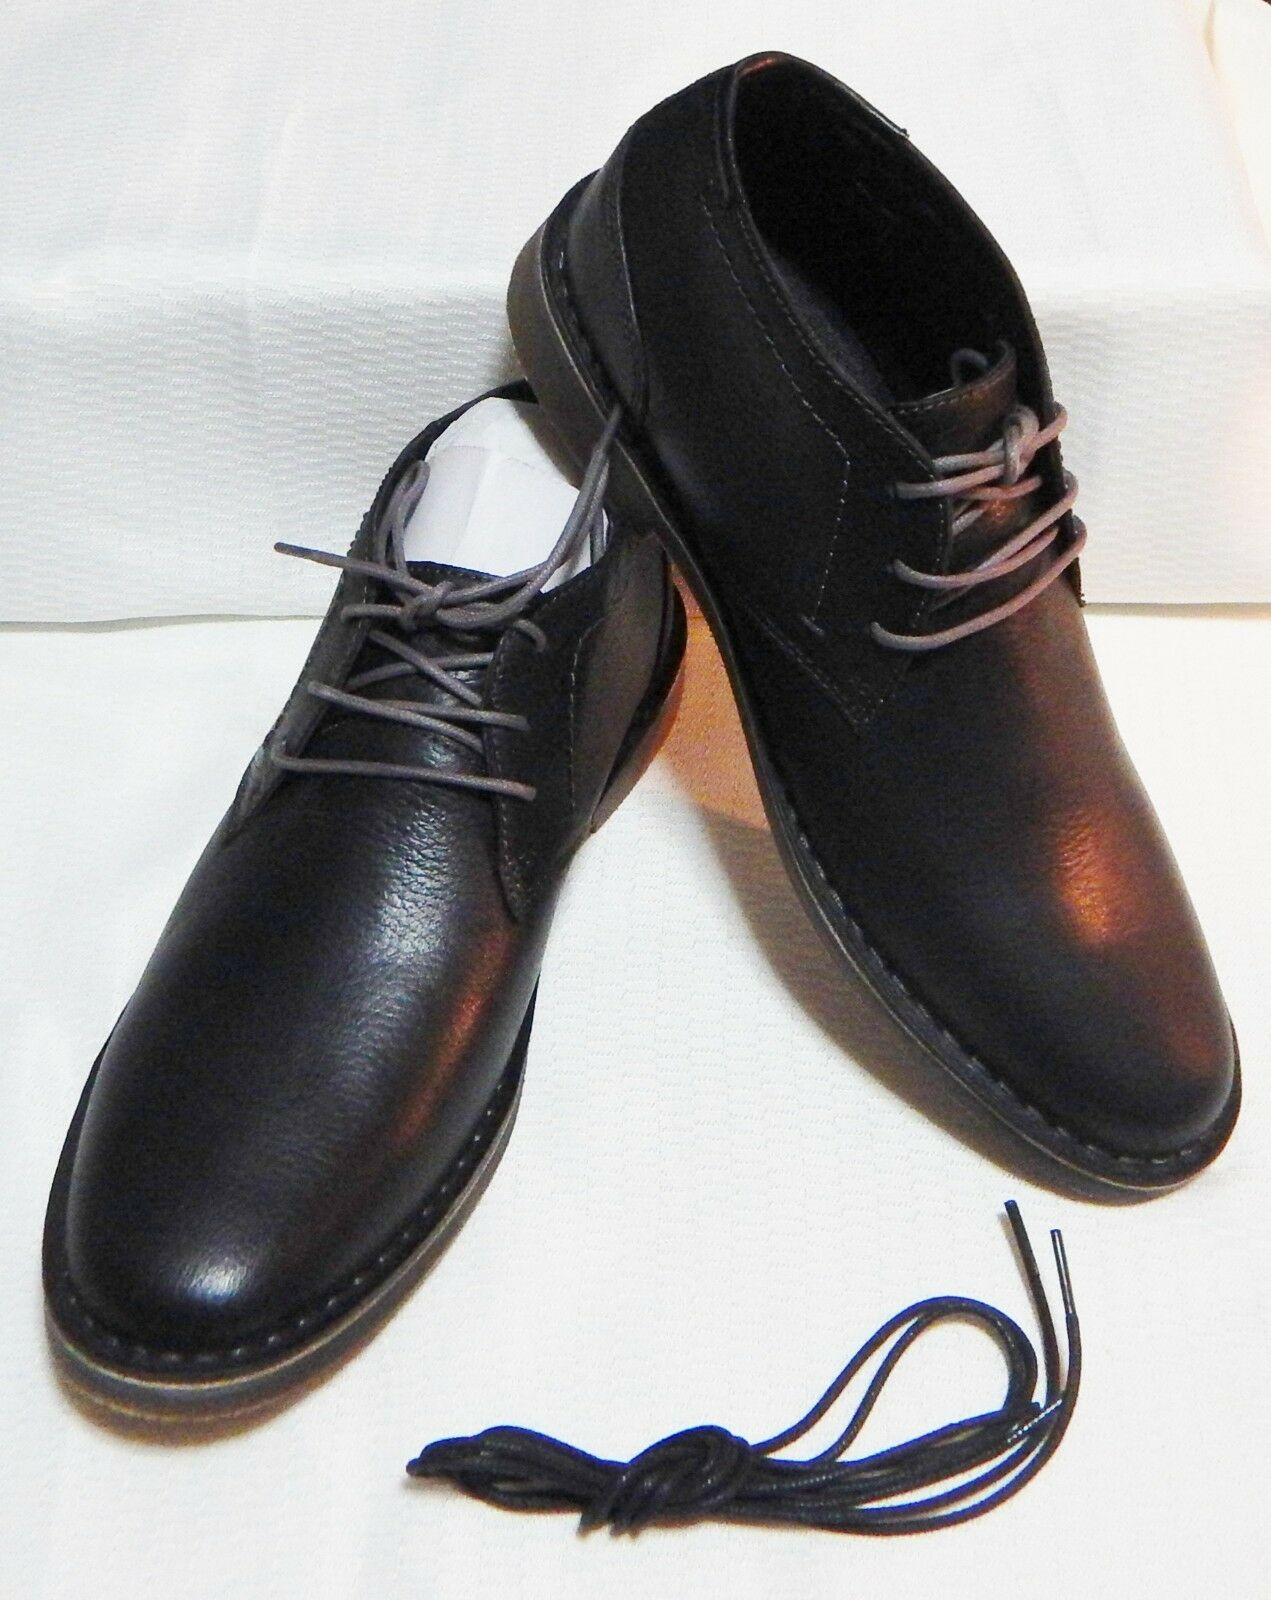 KENNETH COLE PAIR DESERT SUN LEATHER CHUKKA BOOT(BLACK EXTRA PAIR COLE LACES)SZ 12.M #3461 8d3edc